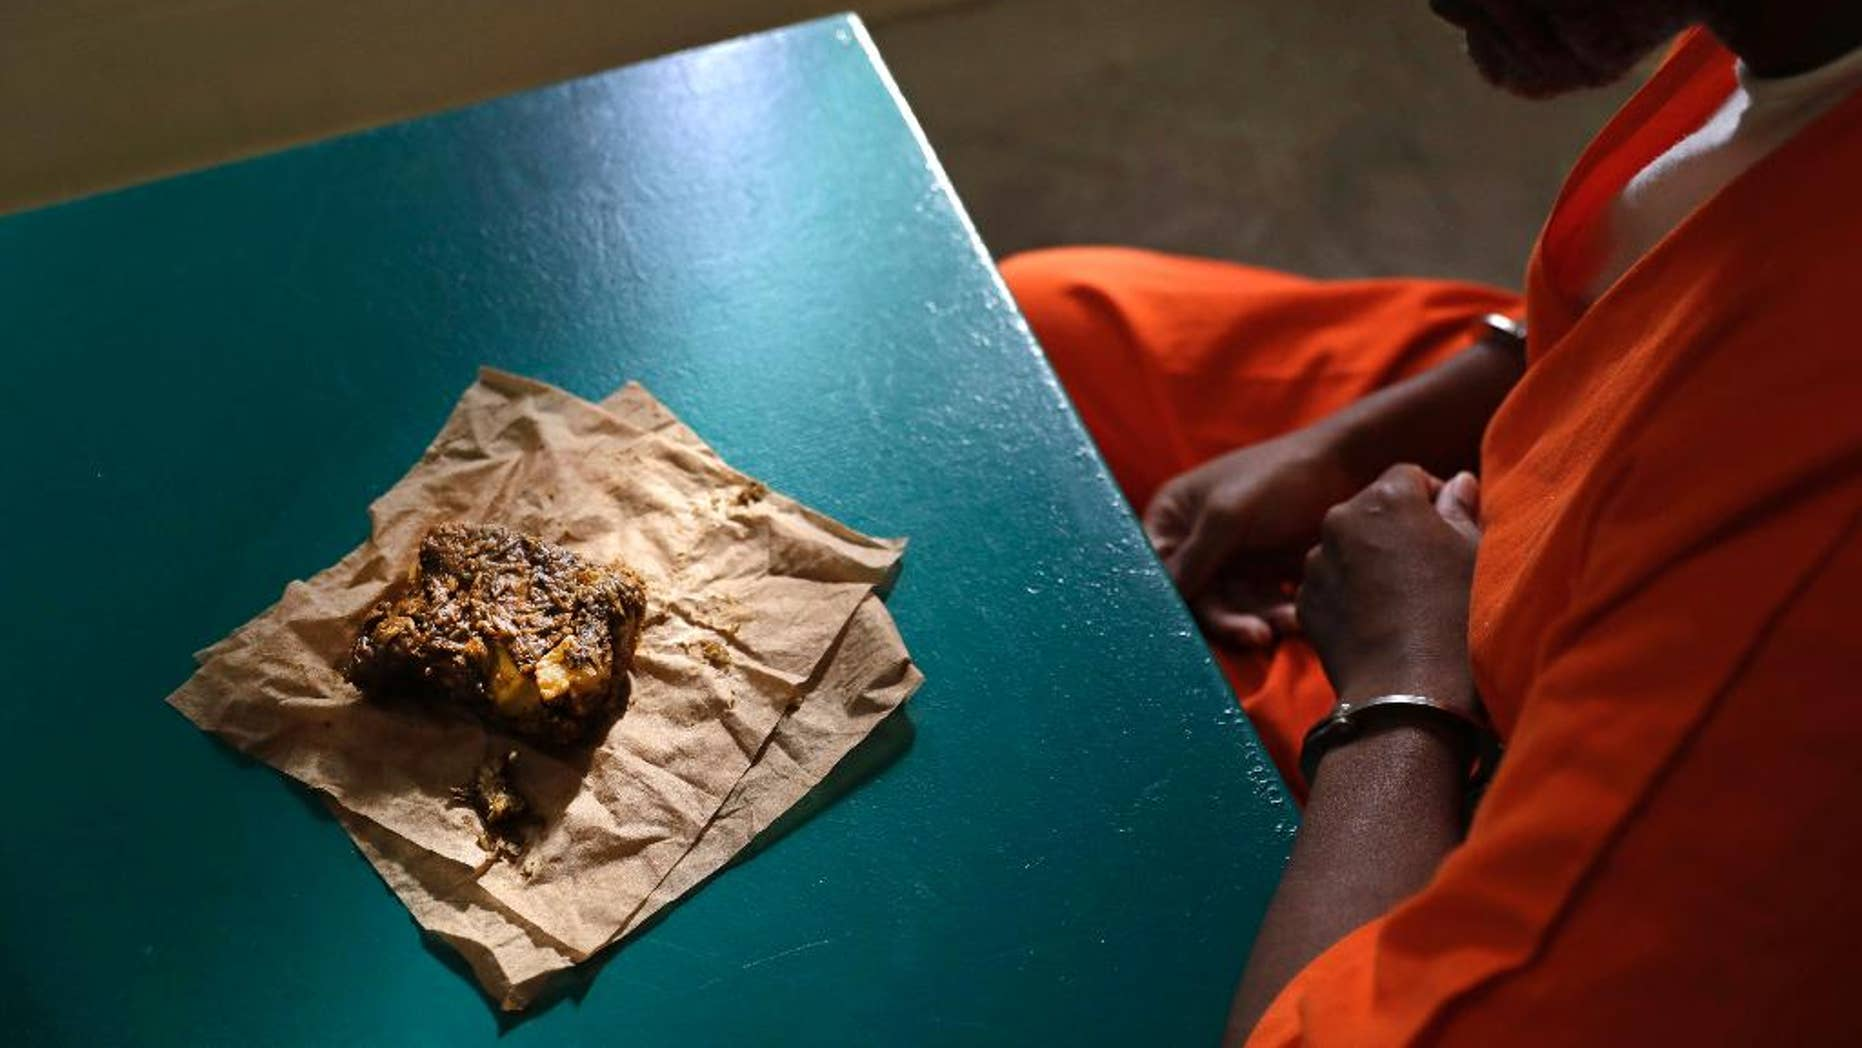 Oct. 26, 2016: A nutraloaf, a meal typically given to inmates for misbehavior involving food or bodily waste, sits in front of inmate Kevin Dickens during an interview with The Associated Press at James T. Vaughn Correctional Center in Smyrna, Del.